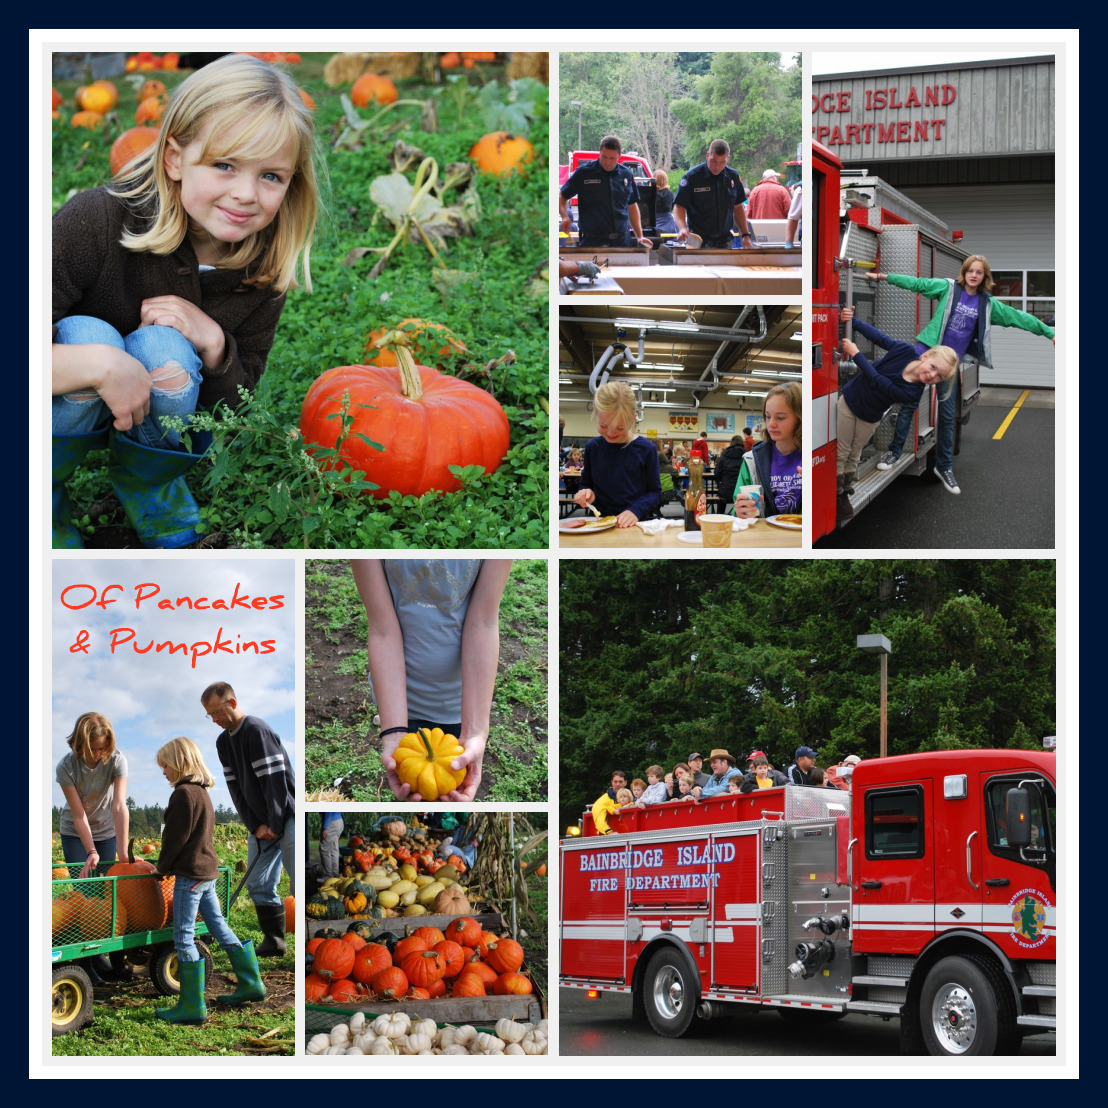 Suyematsu Pumpkin Patch on BainbridgeIsland and Fire Department Pancake Breakfast